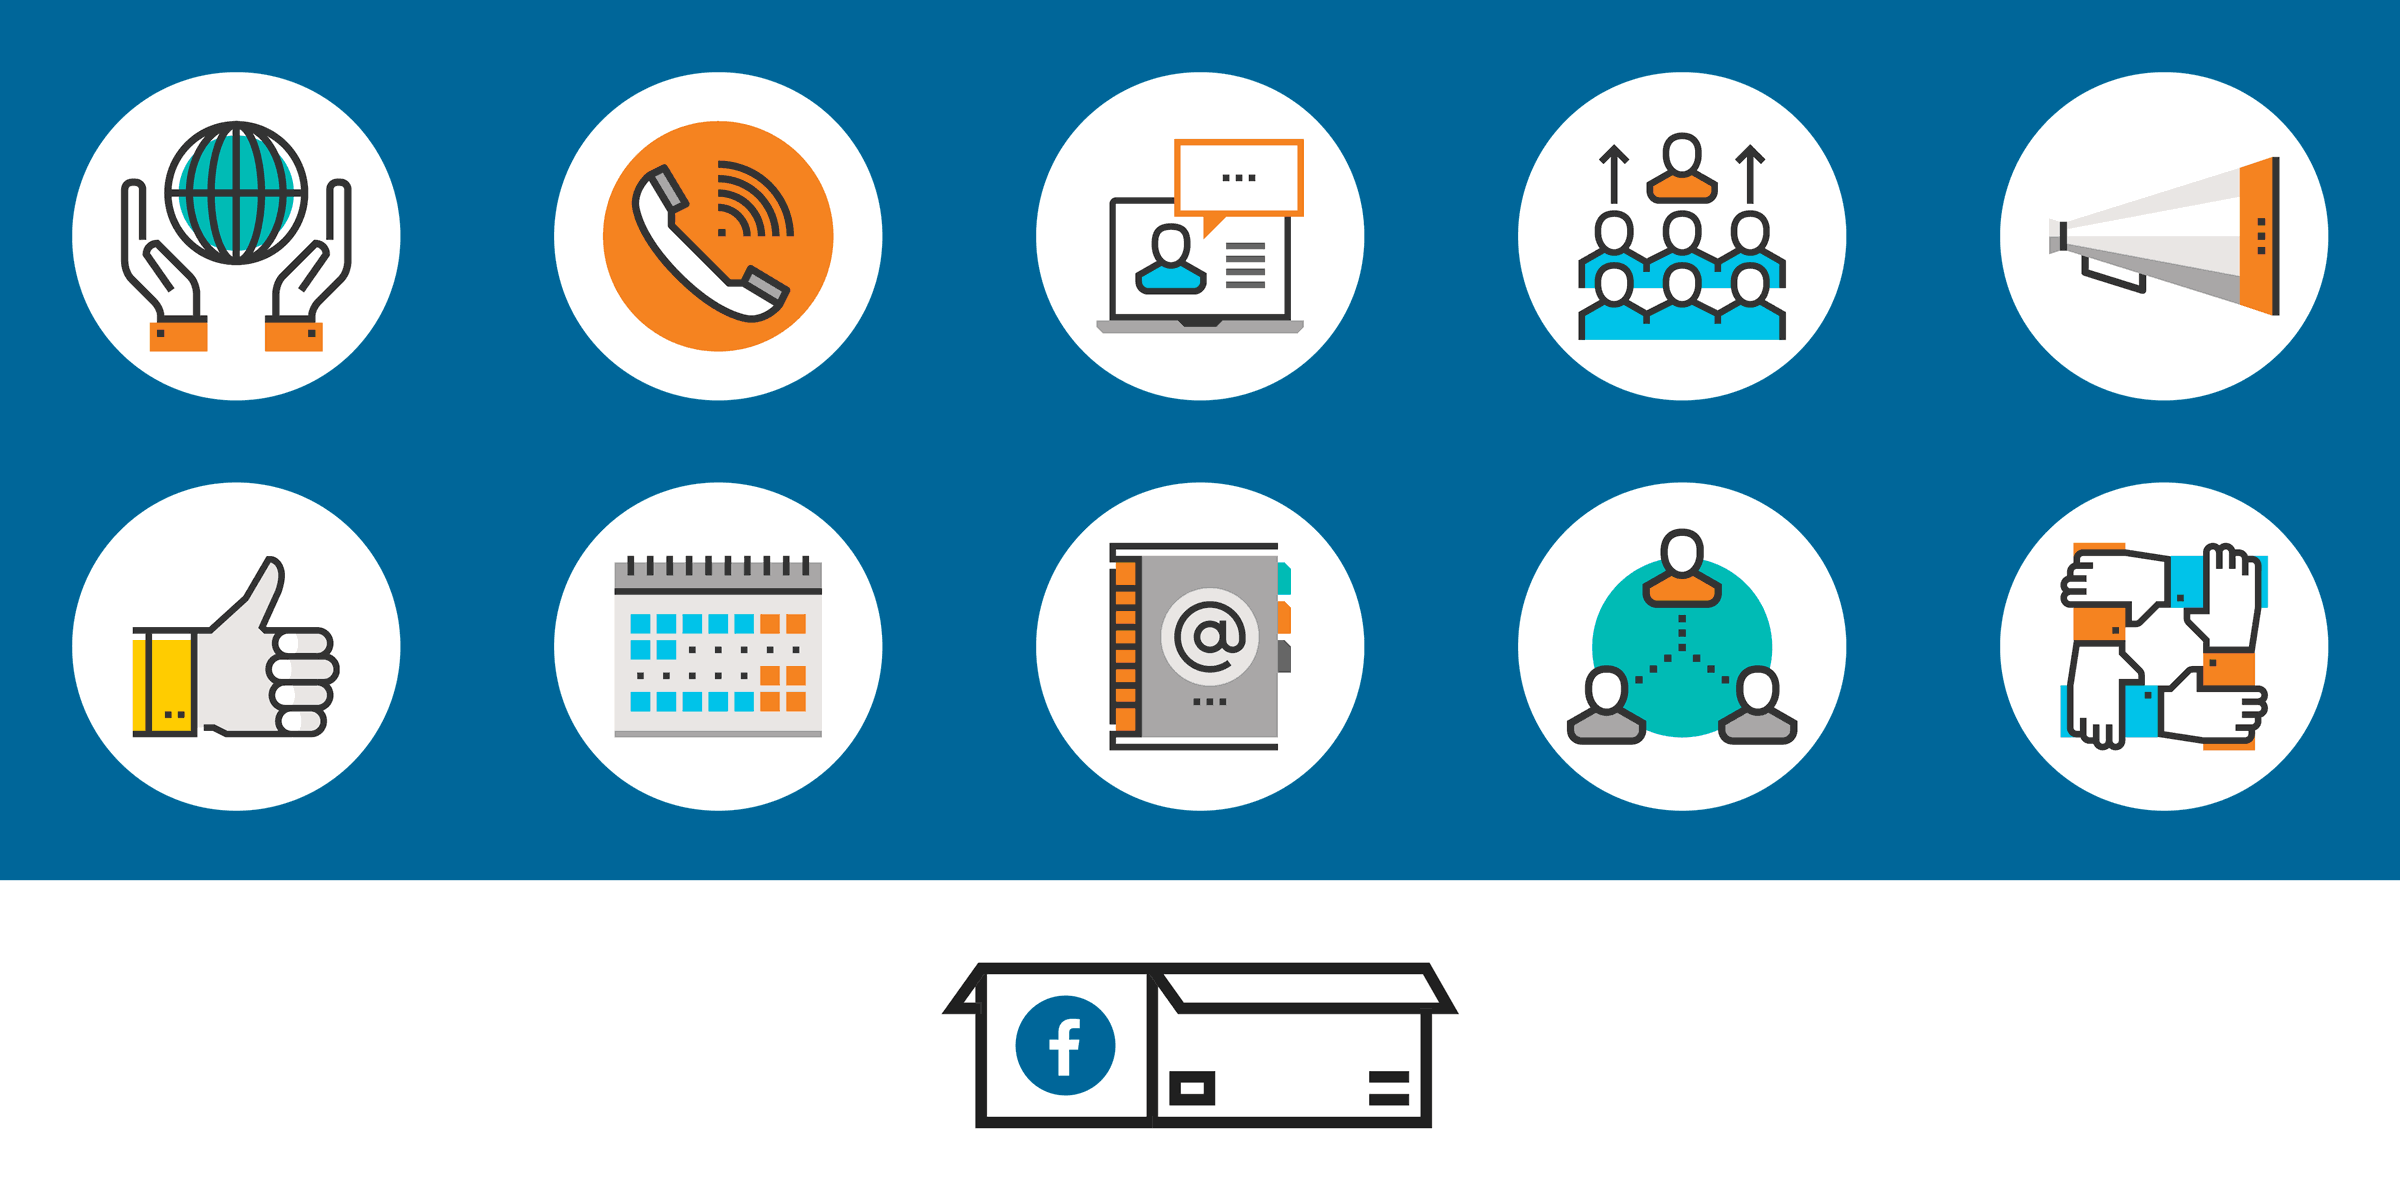 icons such as a globe between people's hands, a thumbs up, a telephone, a calendar, a chat box, a directory, and groups of people above a facebook box, representing workplace for good